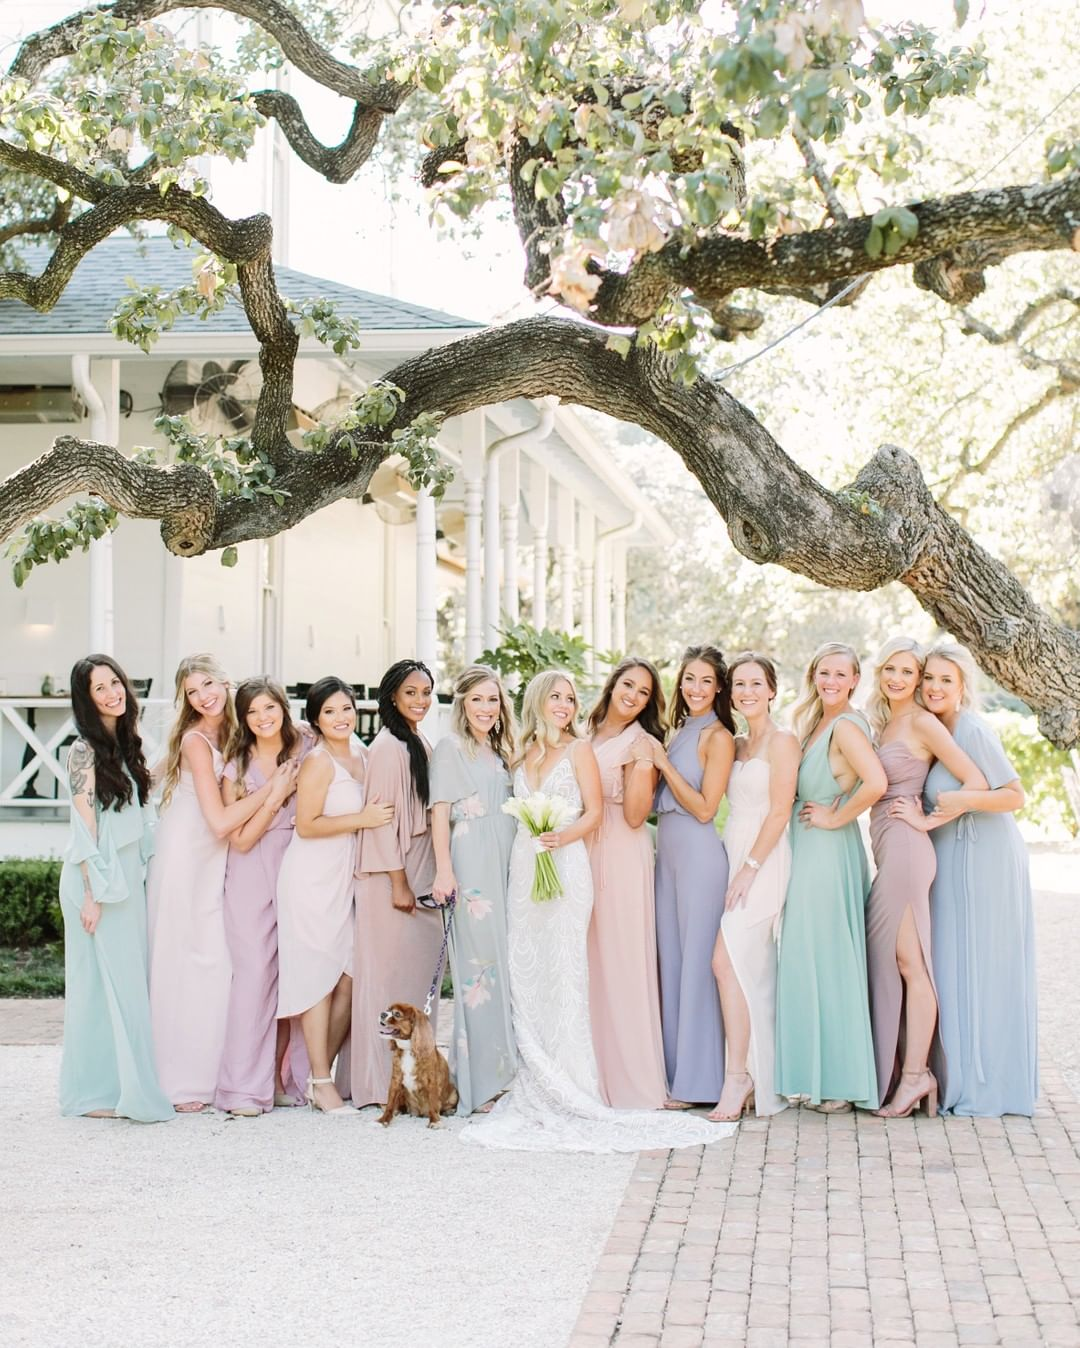 FAQ: What Are the Typical Bridesmaid Responsibilities?